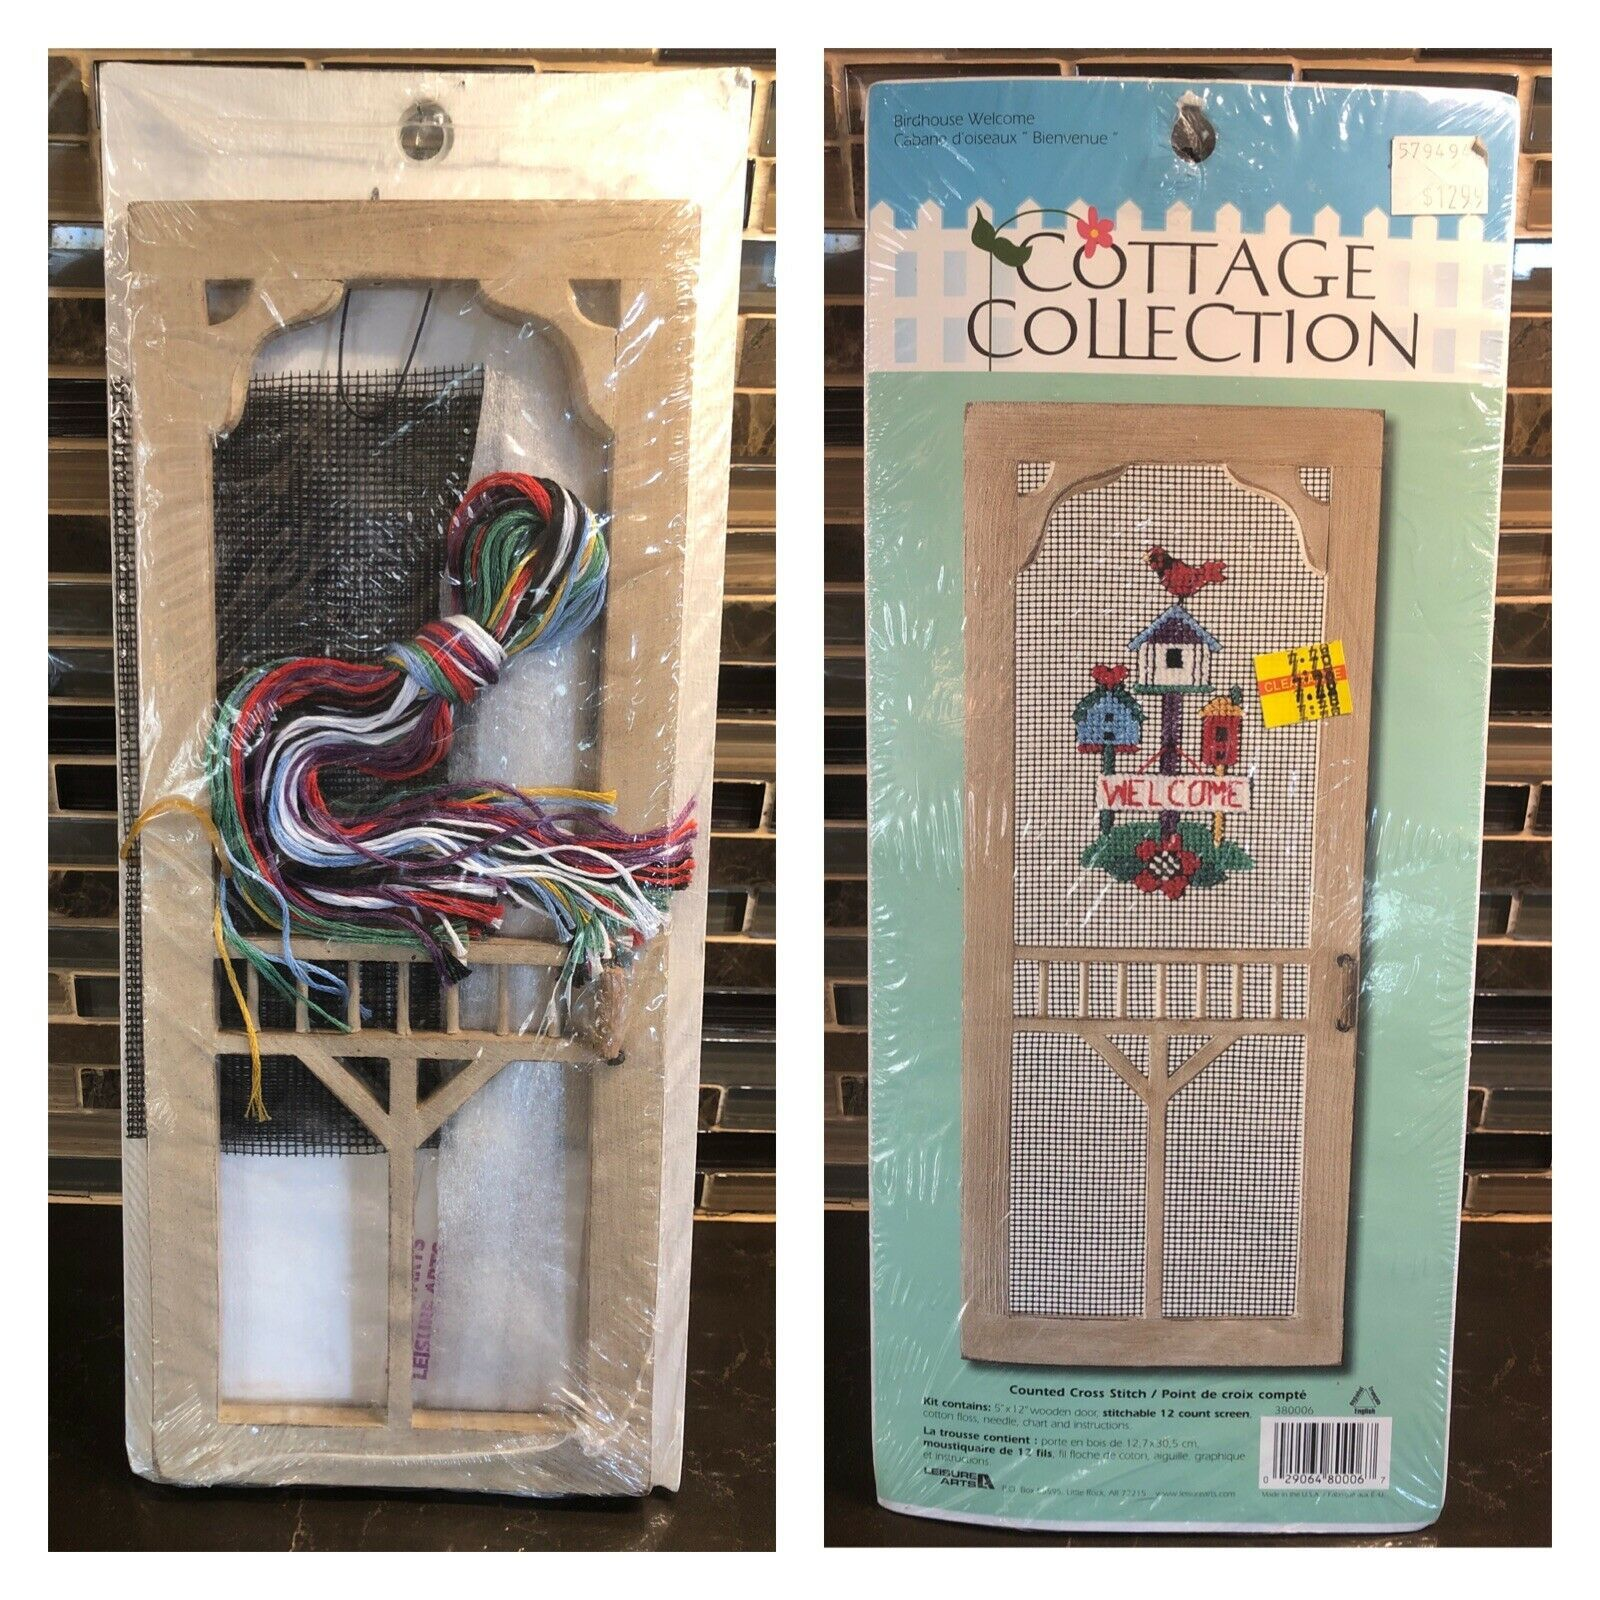 Leisure Arts Cottage Collection Birdhouse Welcome Counted Cross Stitch Kit NIP - $19.79